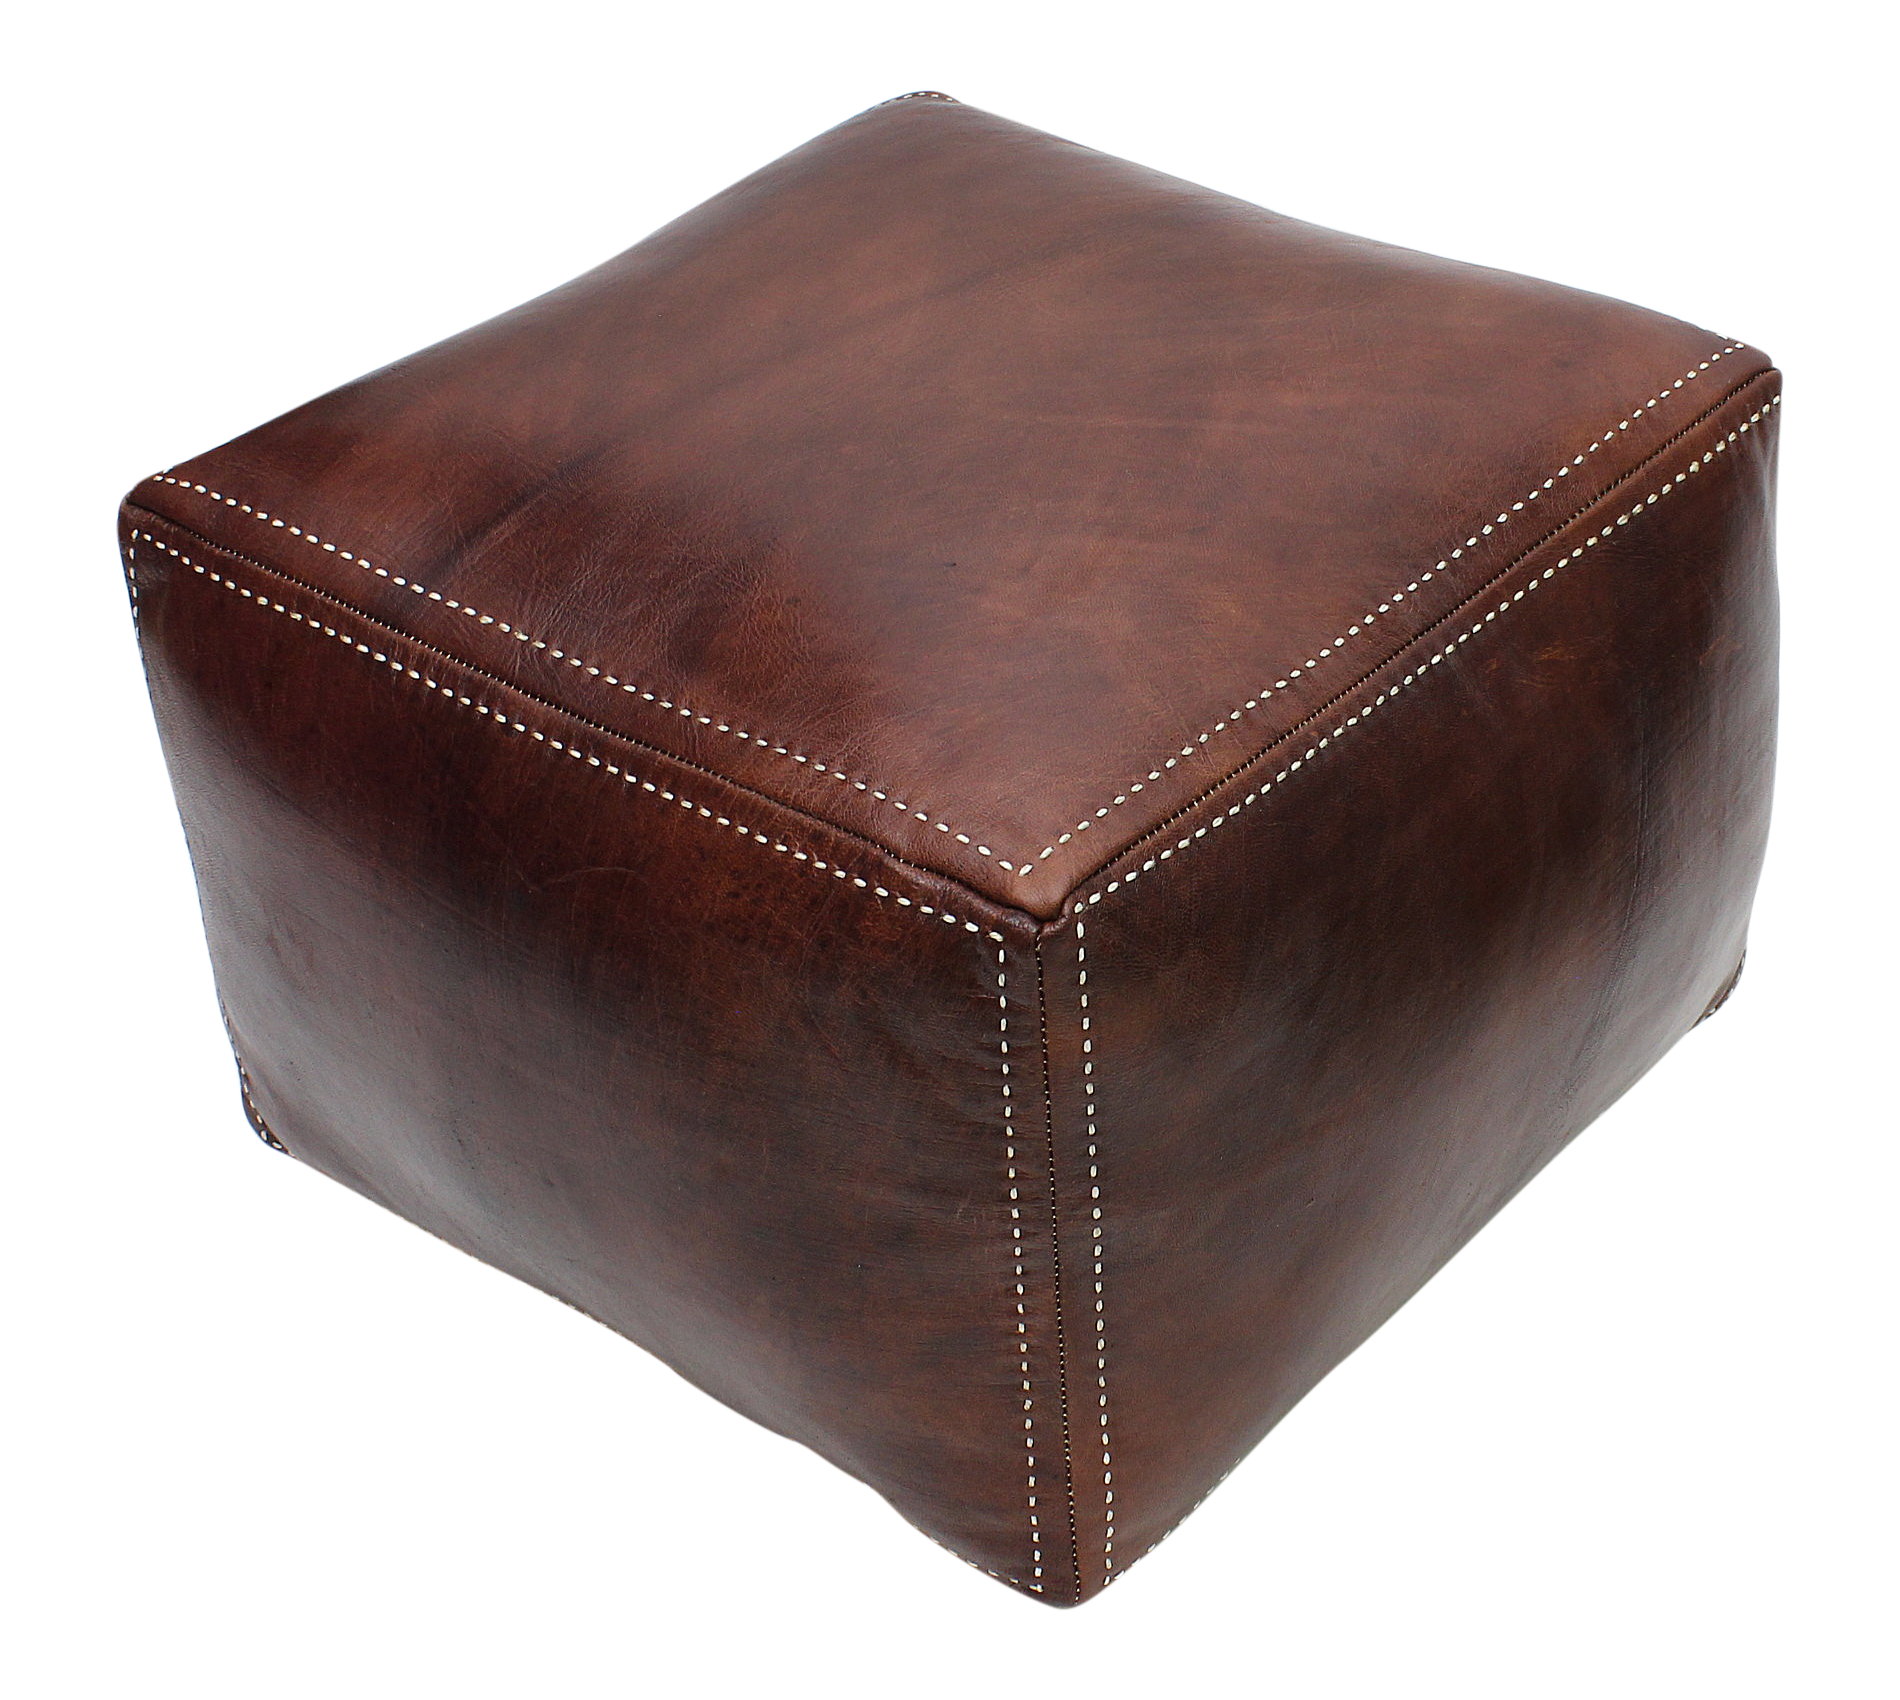 Awesome Moroccan Square Pouffe Pouf Ottoman Footstool In Real Brown Tan Leather 45X45X35 Cm 18X18X14 In Ncnpc Chair Design For Home Ncnpcorg